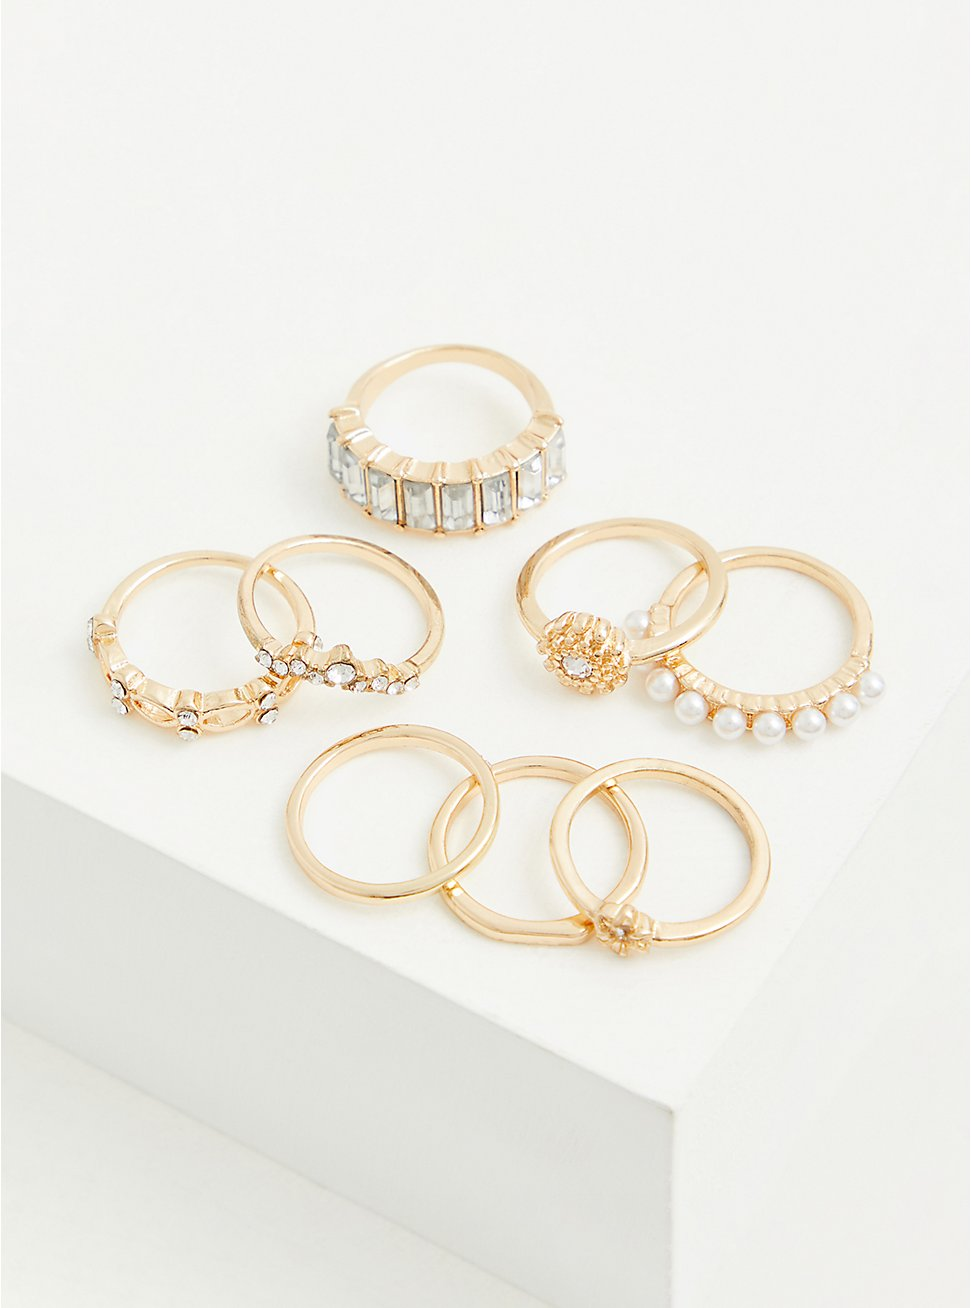 Gold-Tone Faux Pearl Ring Set - Set of 8, GOLD, hi-res